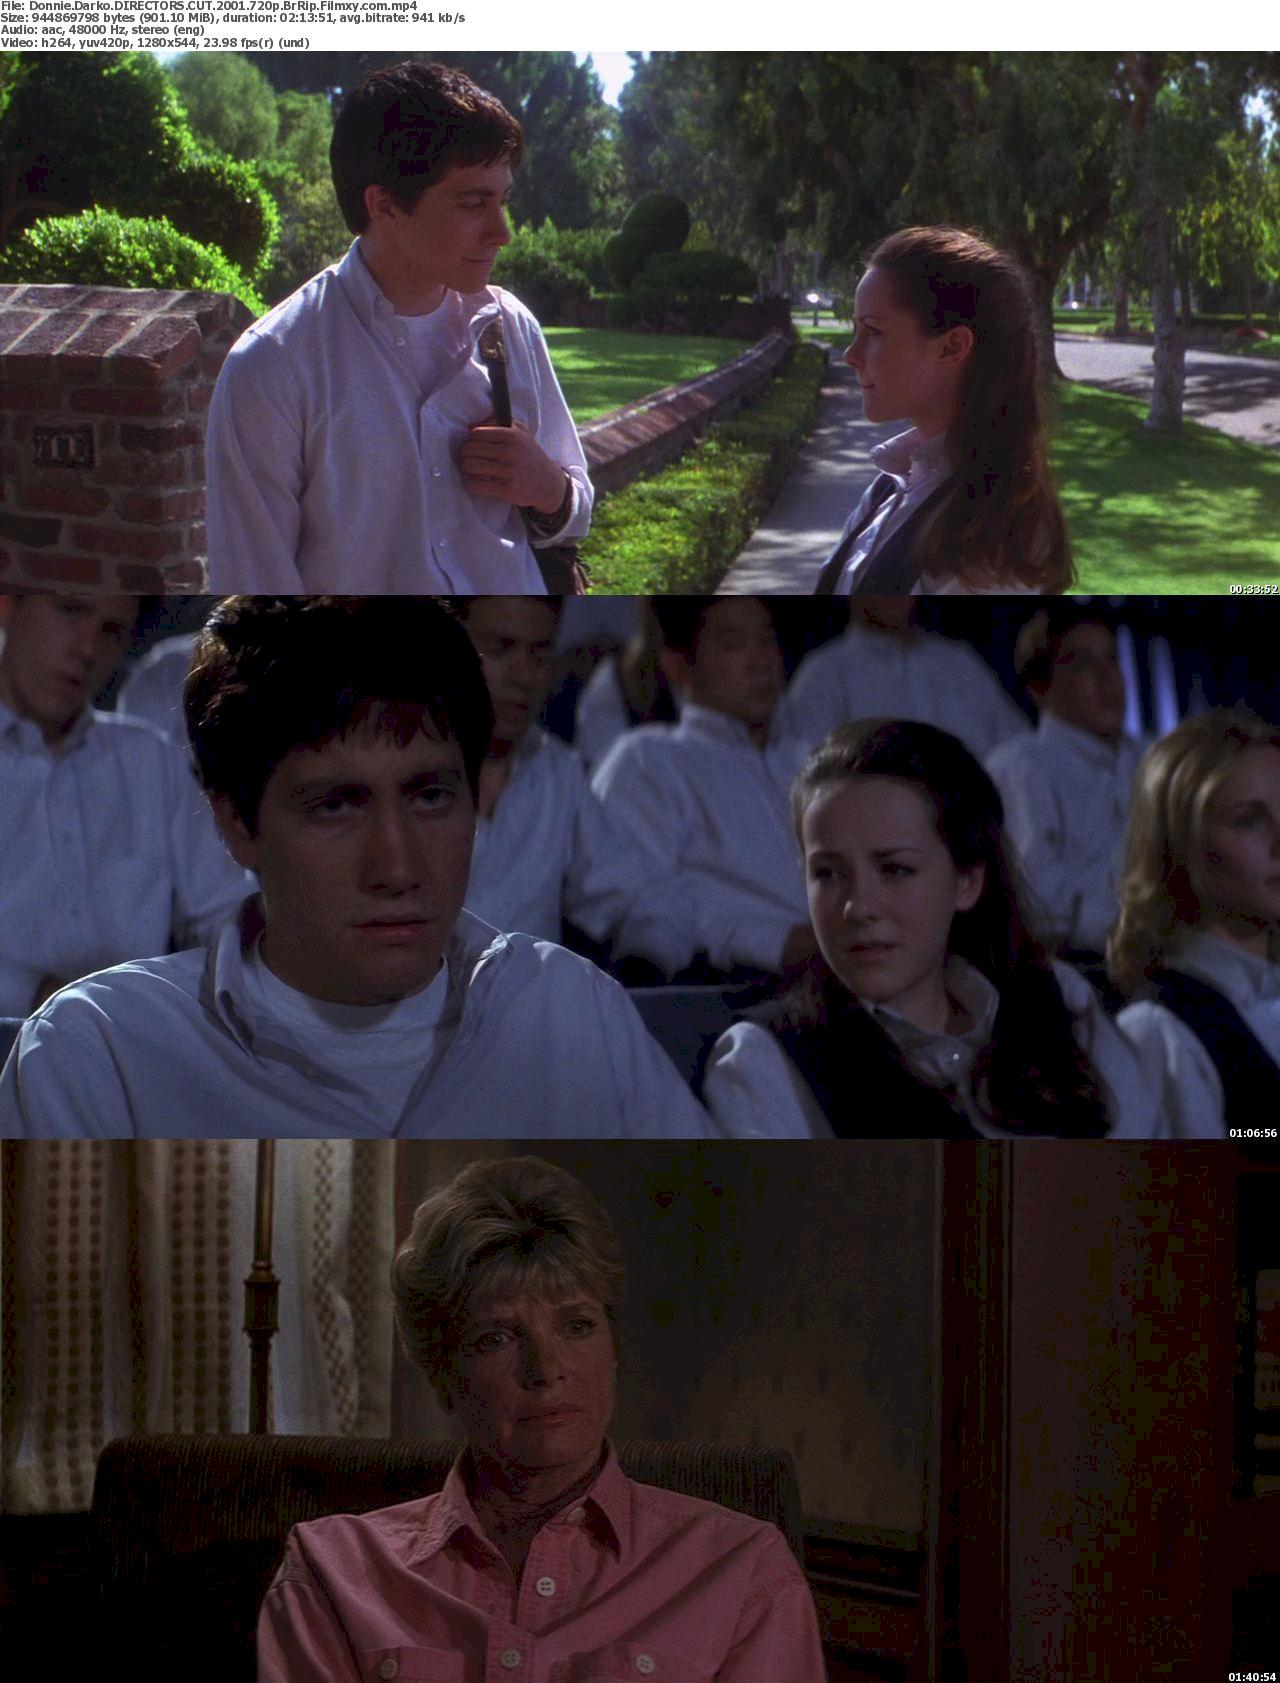 Donnie Darko (2001) 720p & 1080p Bluray Free Download 720p Screenshot